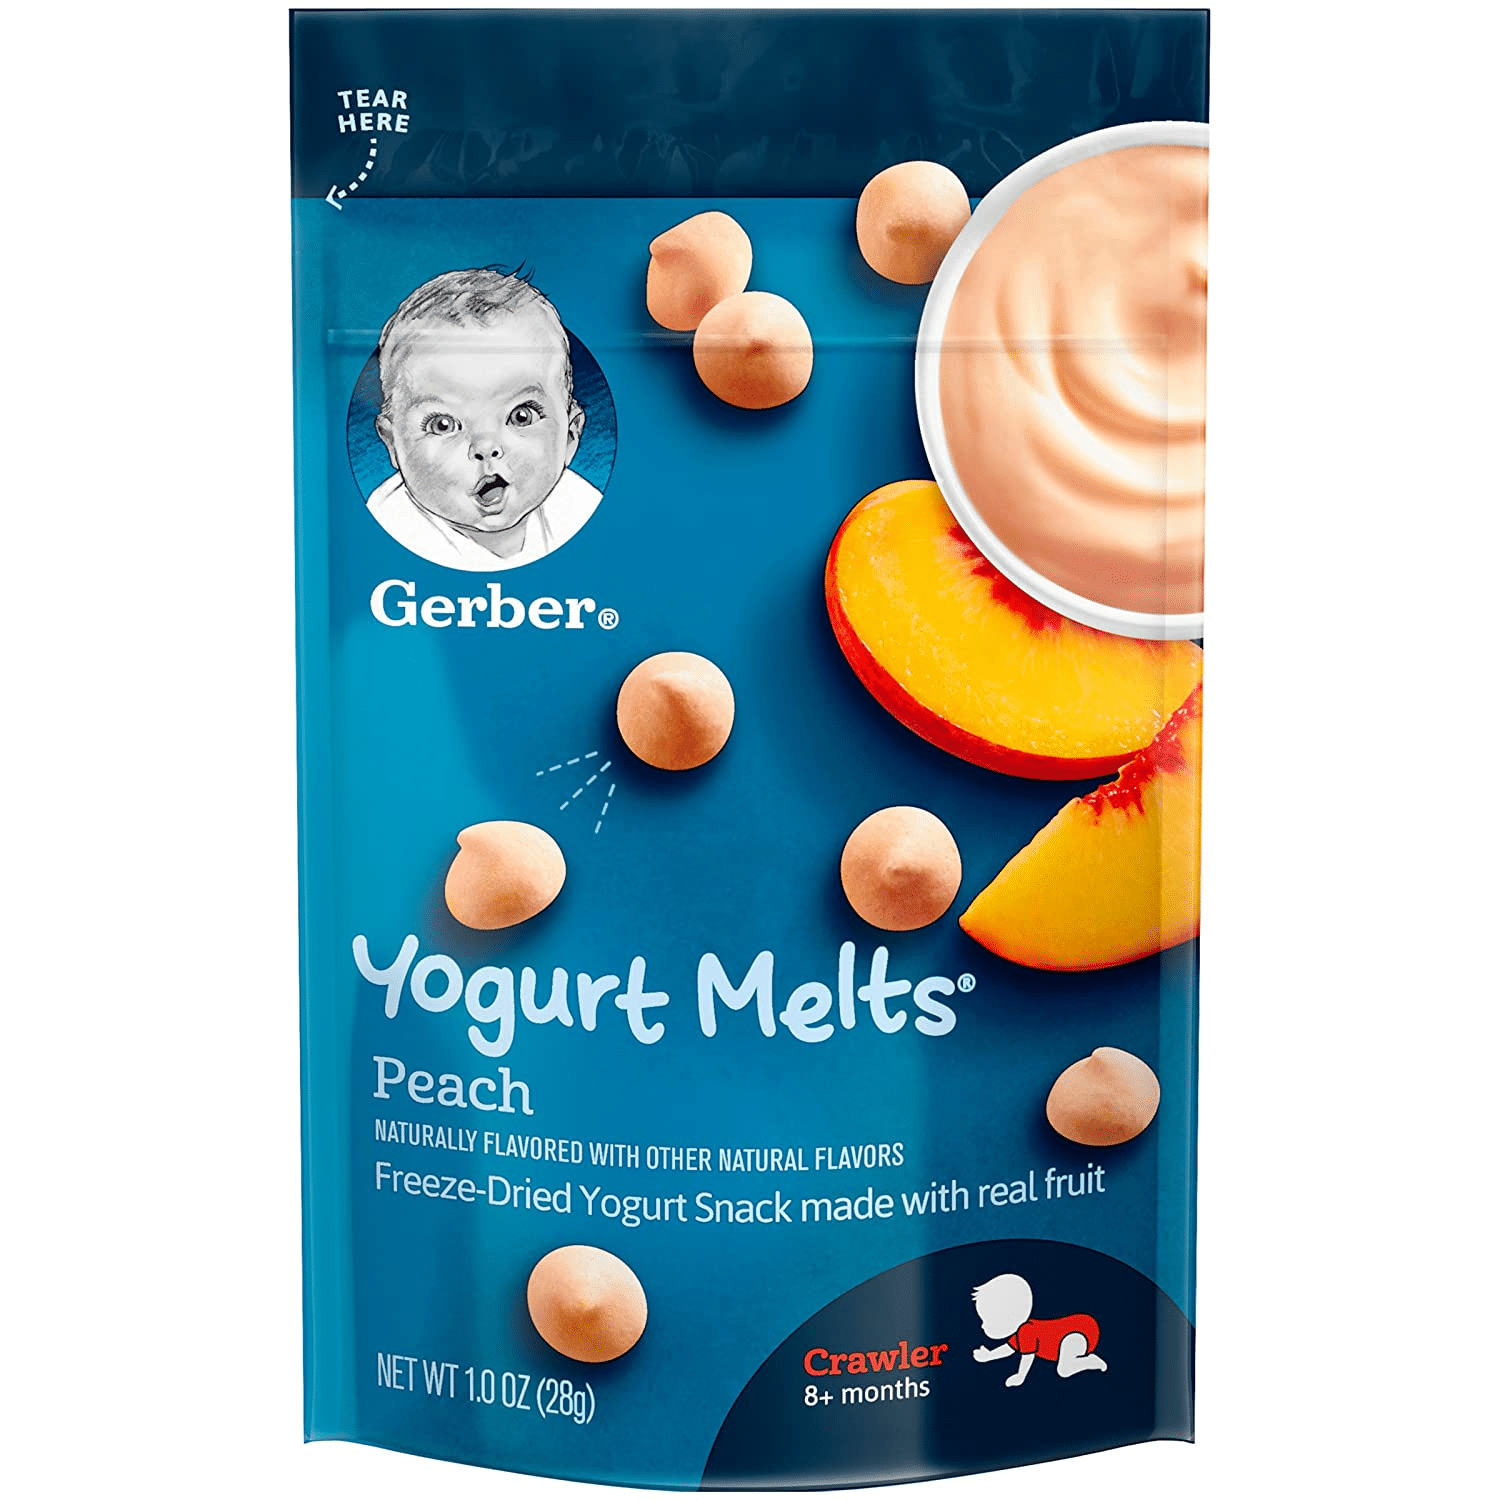 Gerber Yogurt Melts - Peach is Best Yogurt melts for infants in Malaysia. brand with baby face